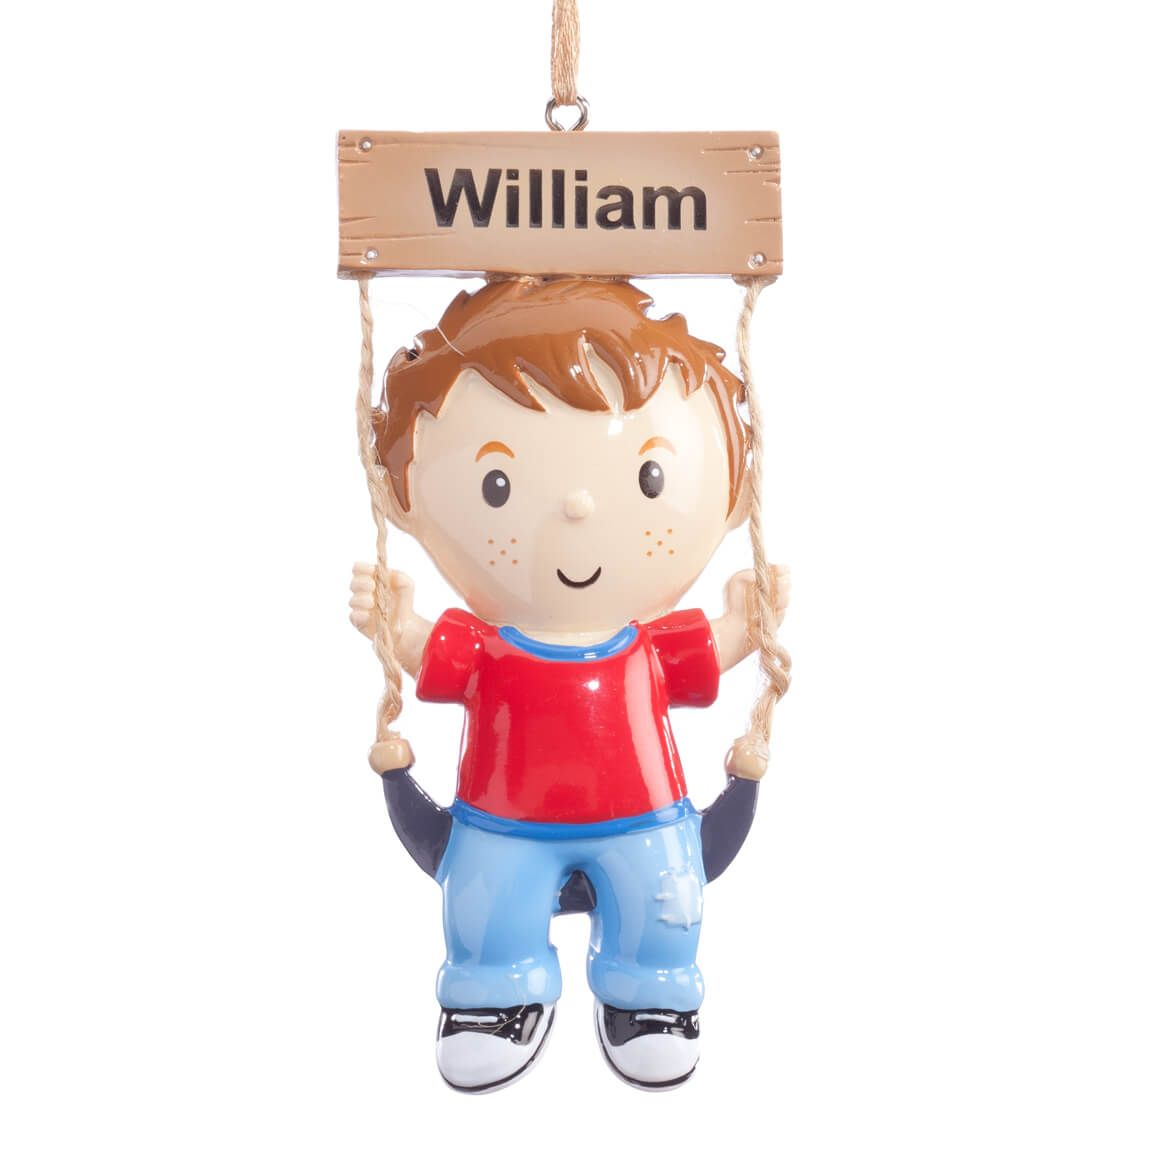 Personalized Child on Swing Ornament-360693